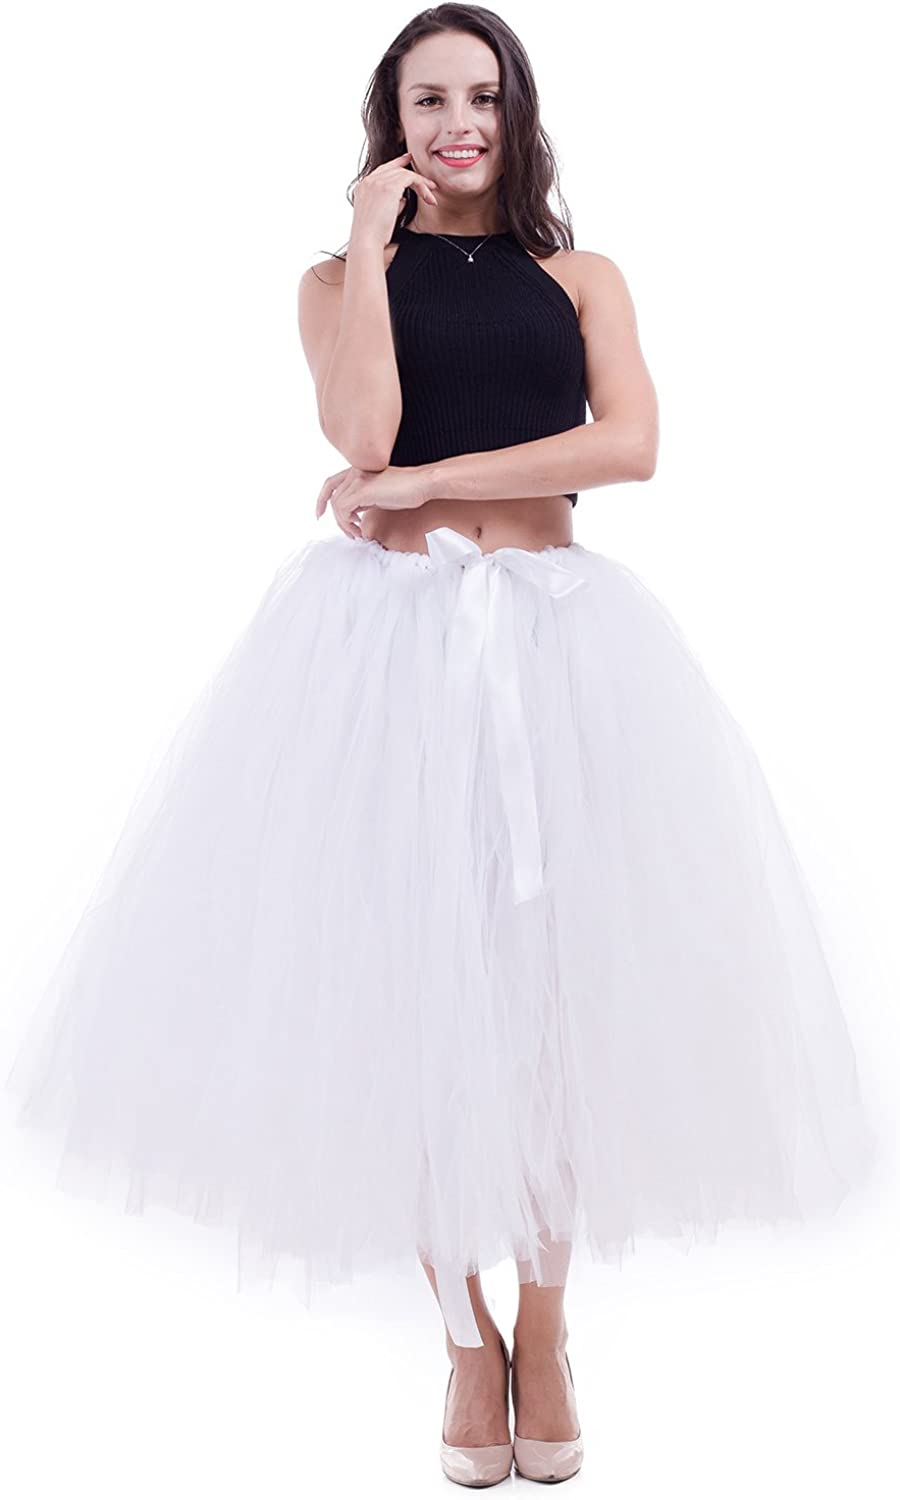 Handmade Adult Tutu Tulle Skirt for Women 31.5 Inch Long Photography Wedding Party Skirts